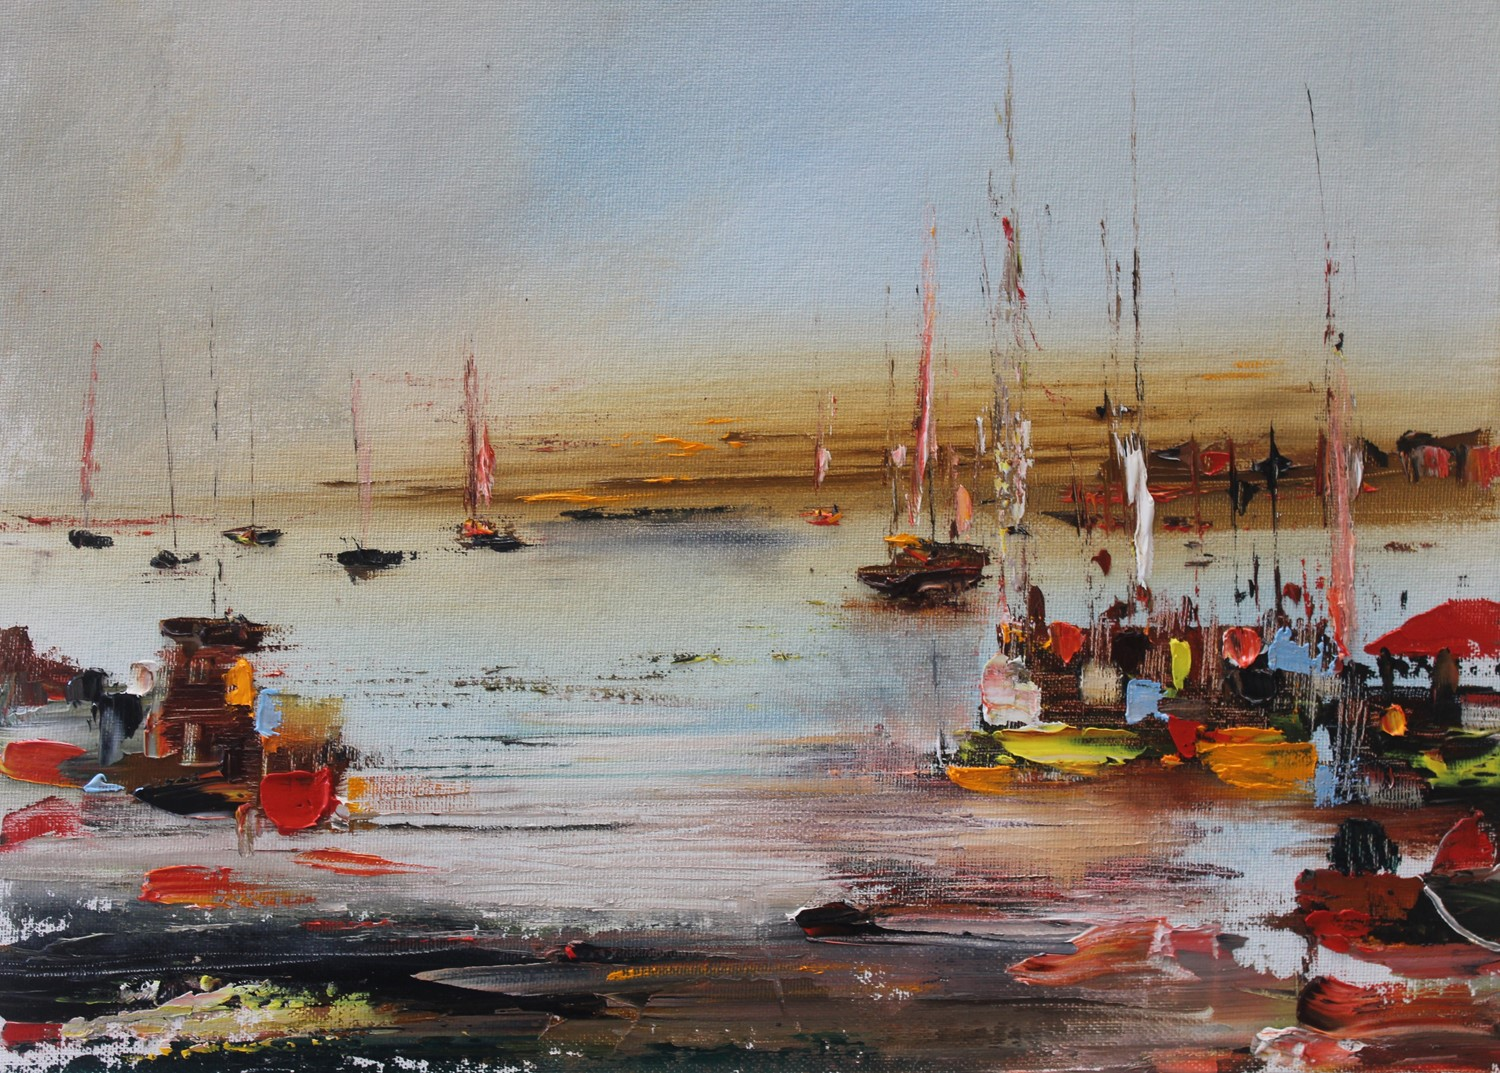 'In the Harbour' by artist Rosanne Barr